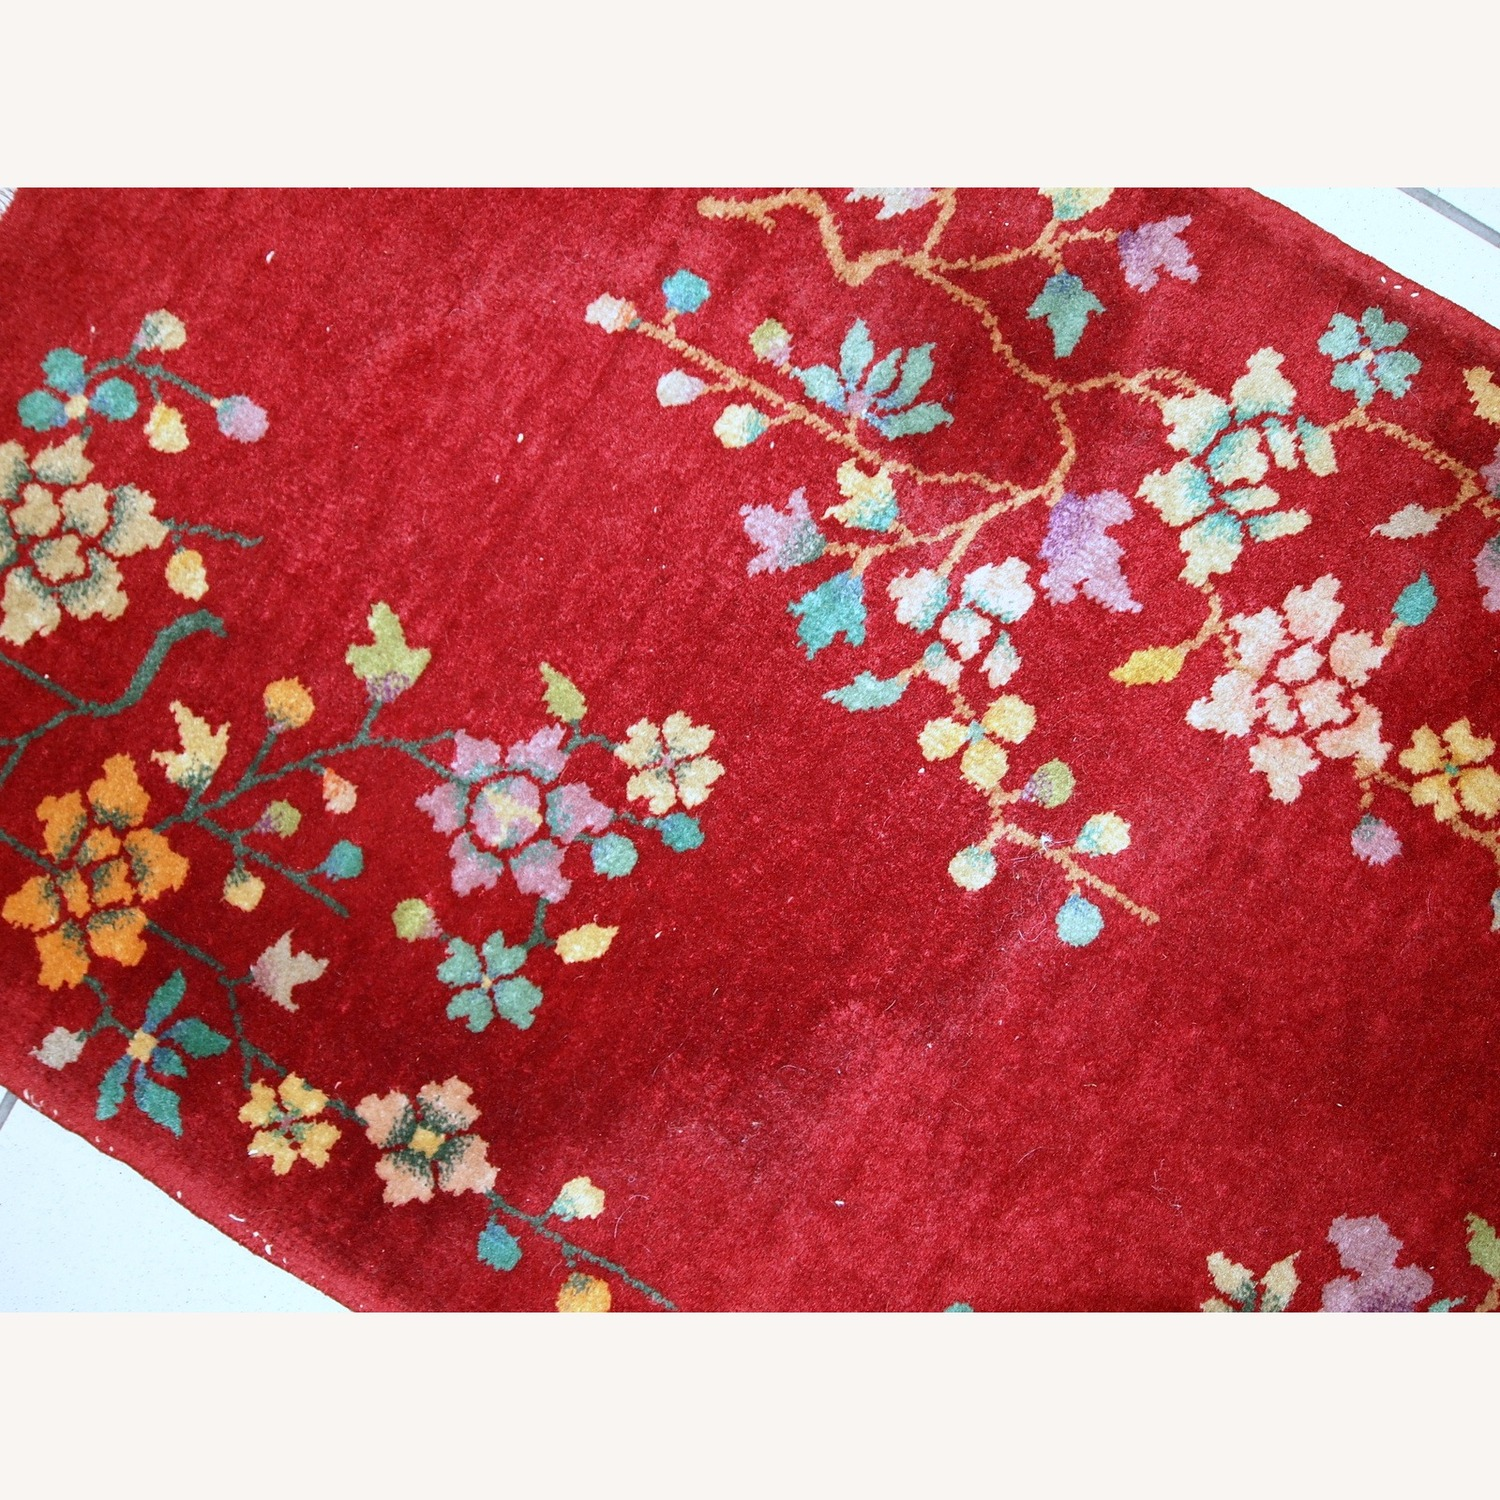 Handmade Antique Art deco Chinese Rug - image-8